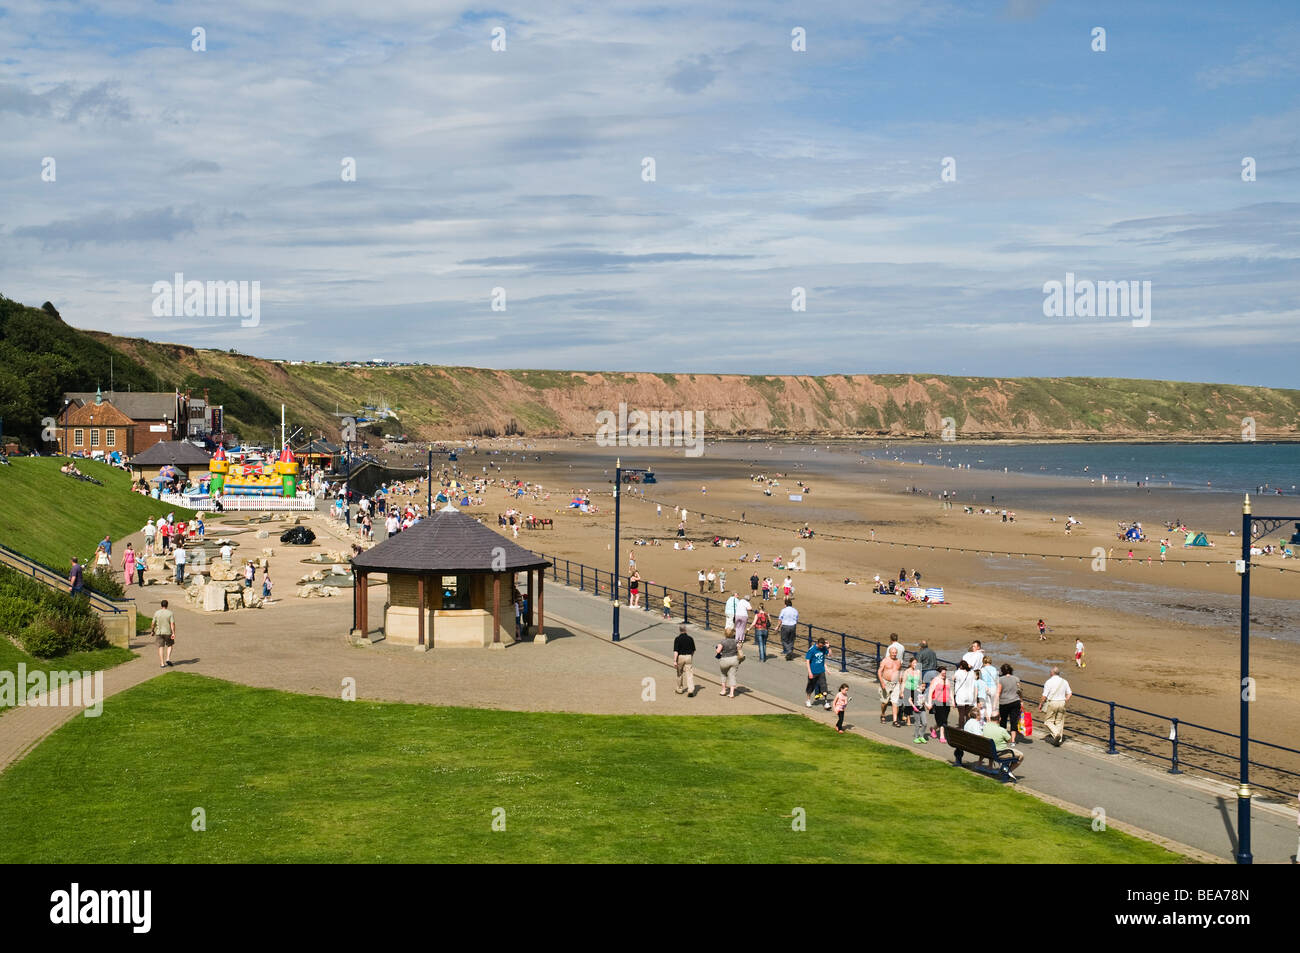 dh  FILEY NORTH YORKSHIRE Holidaymakers holiday resort Filey seafront promenade uk seasides english - Stock Image